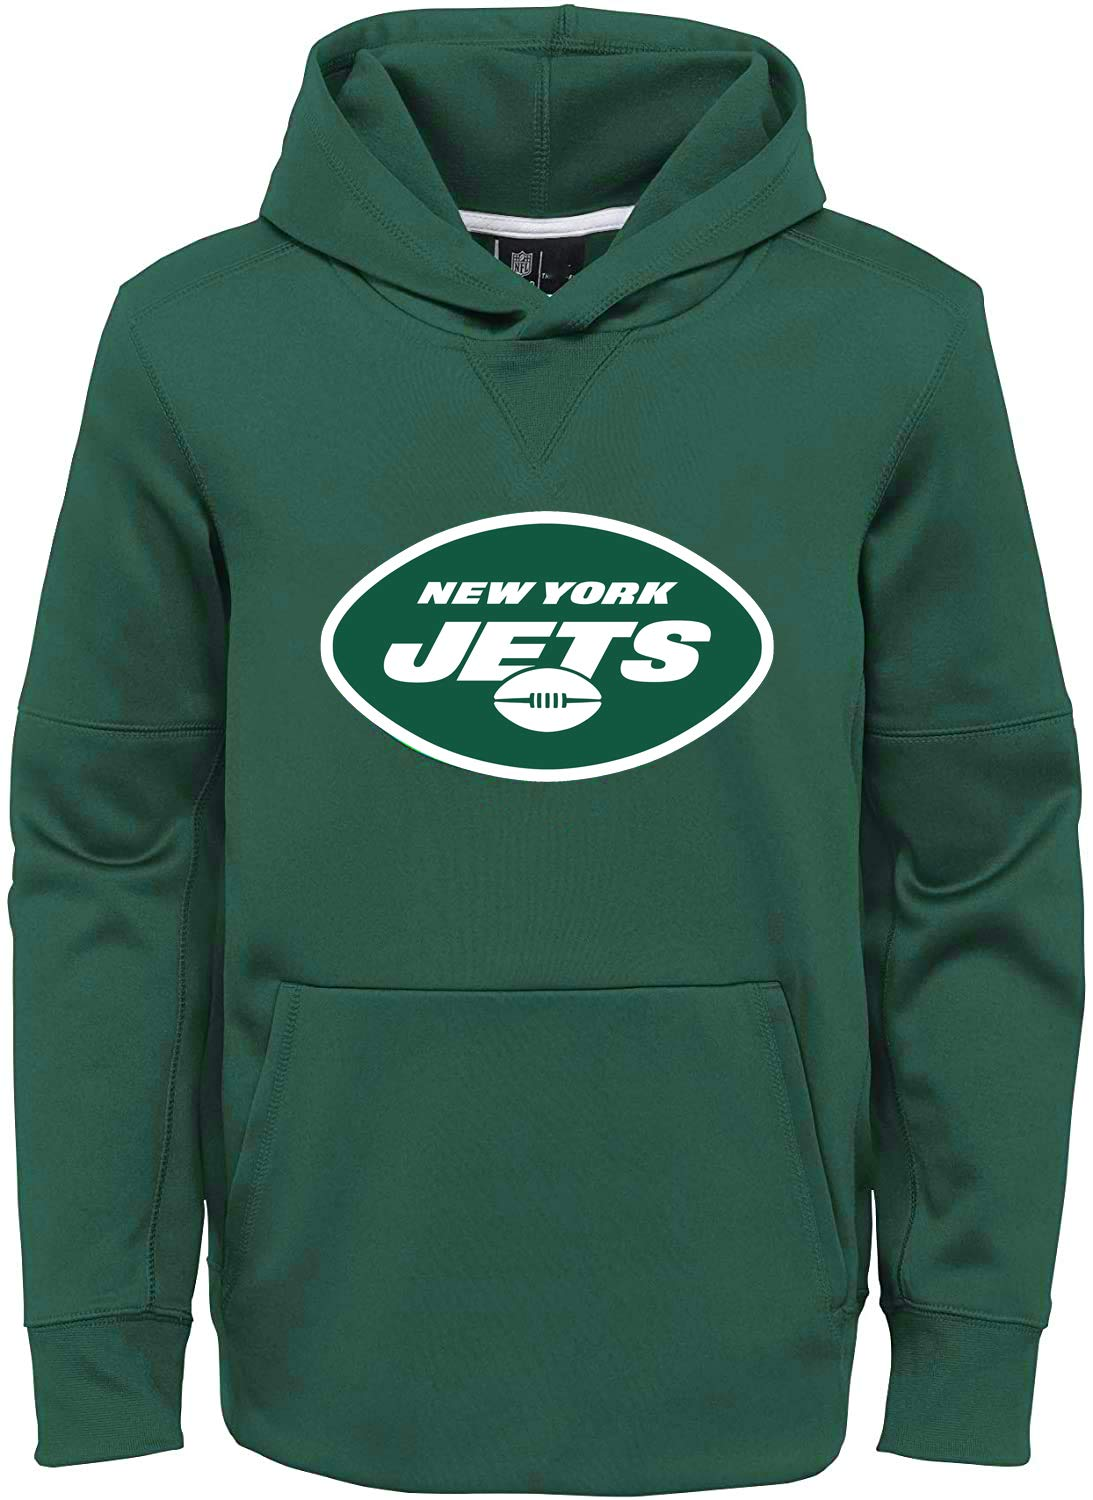 OuterStuff NFL Youth 8-20 Primary Logo Performance Circuit Pullover Hoodie